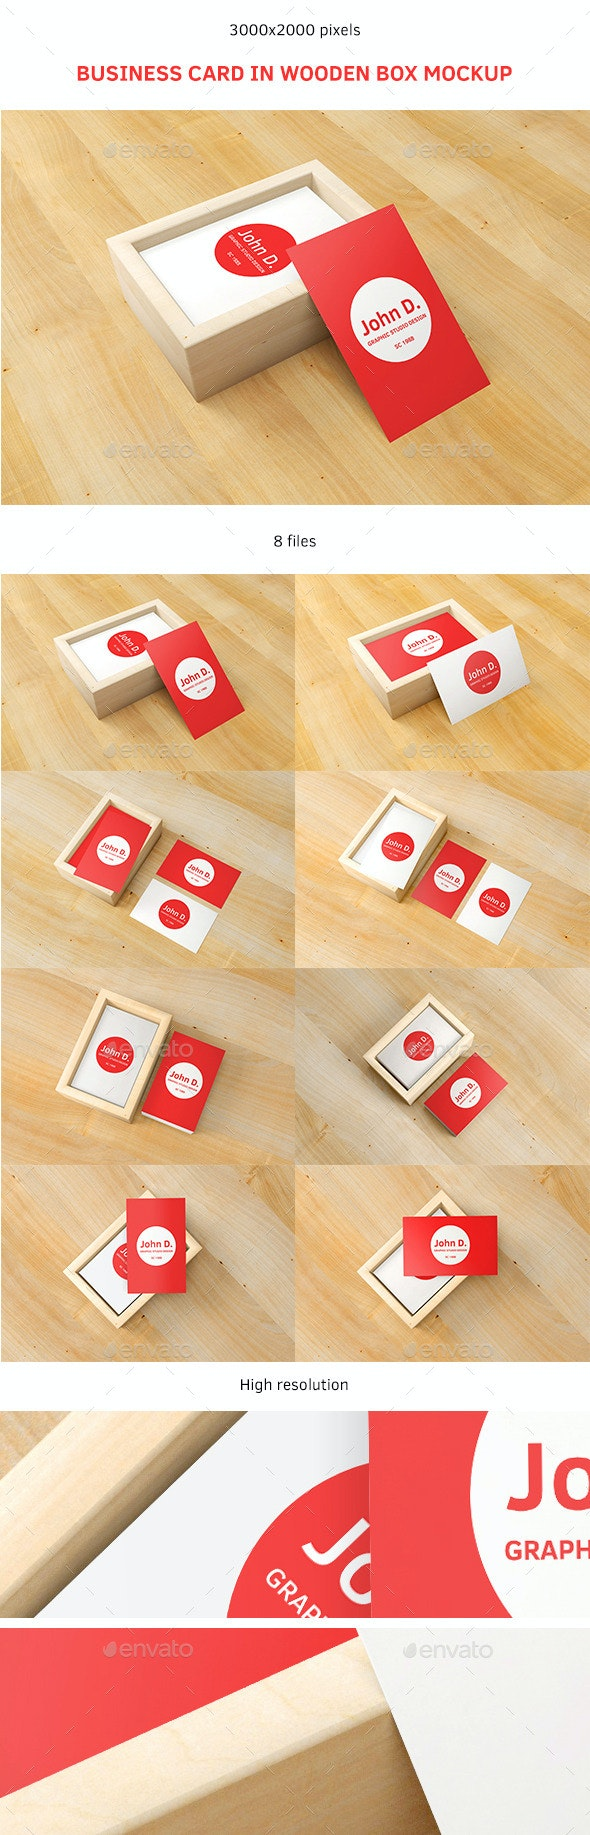 Business Card in Wooden Box Mockup - Business Cards Print